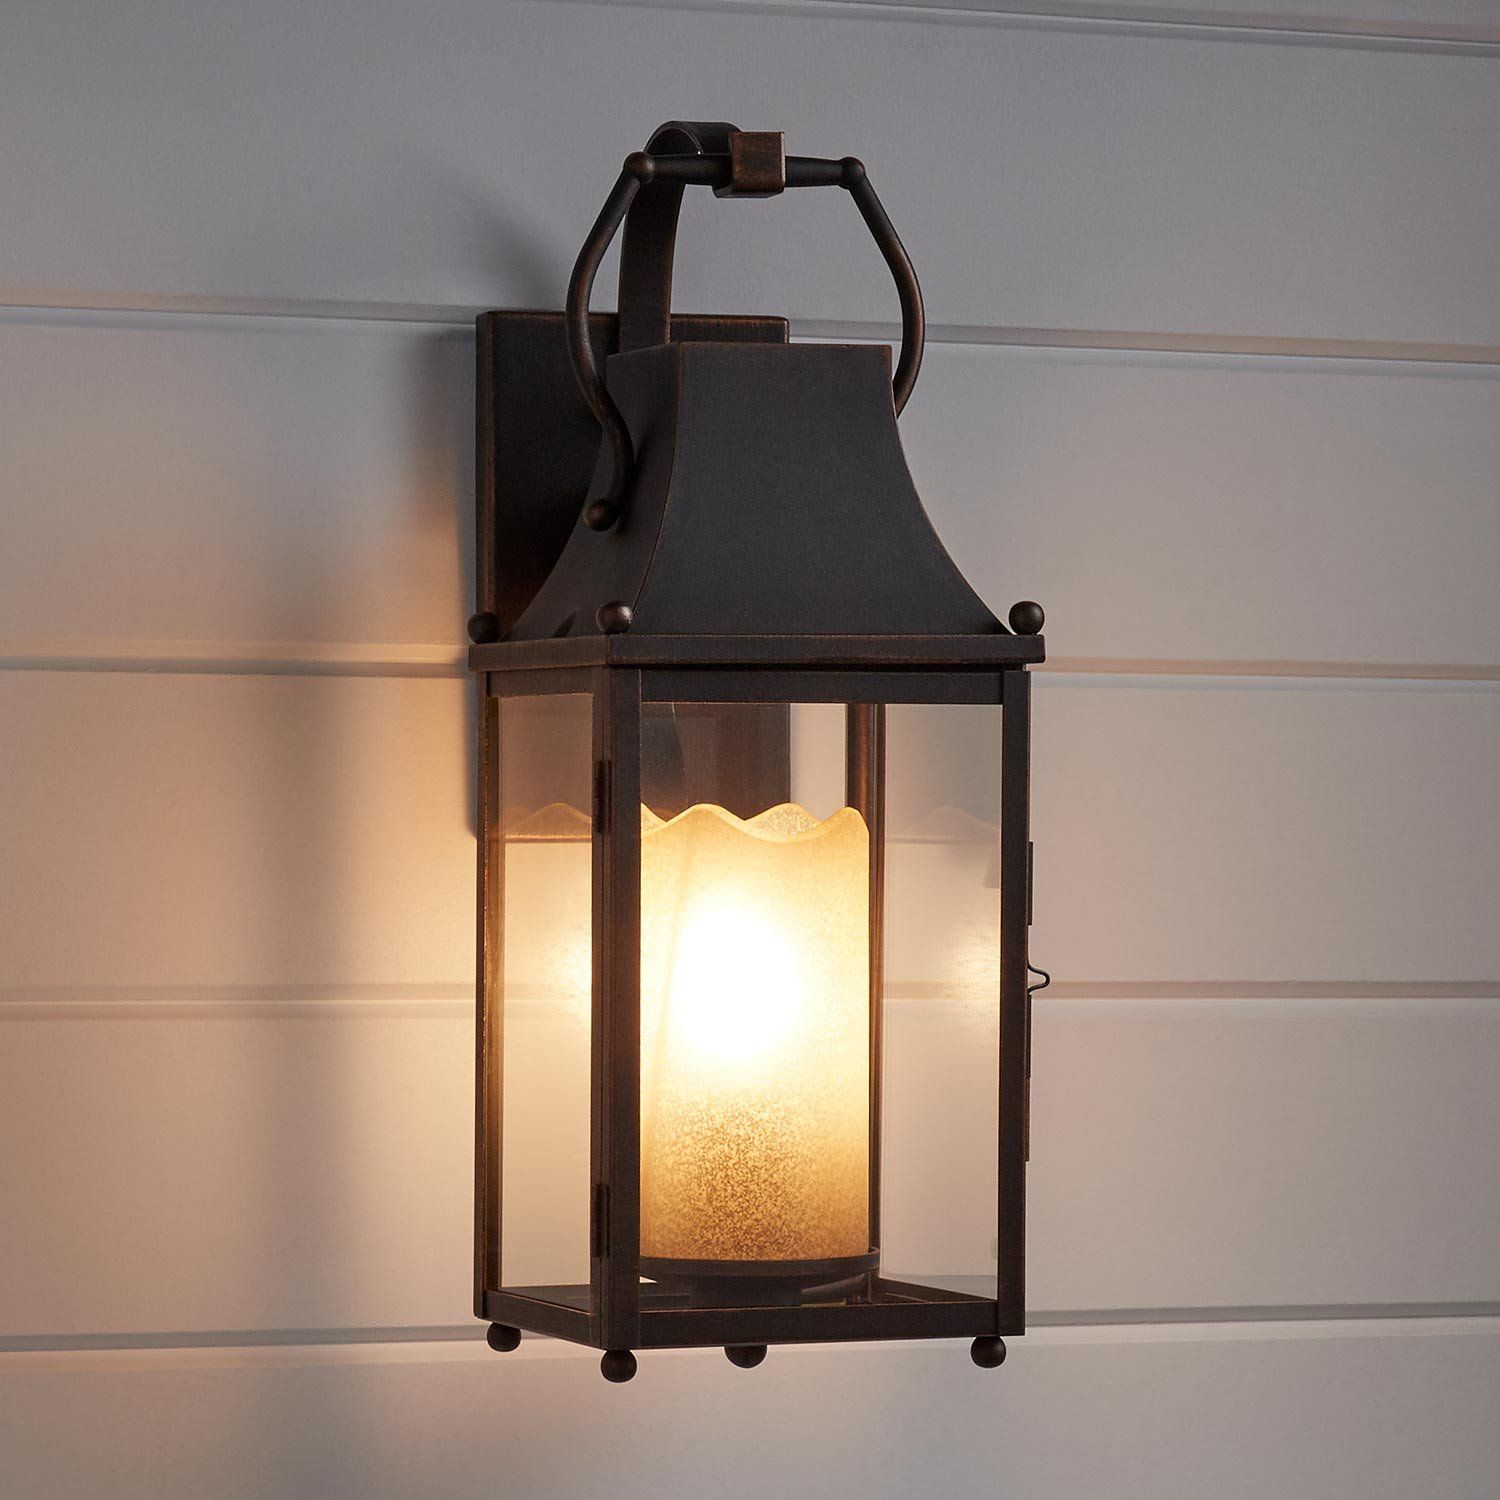 Whitby Bronze Outdoor Entrance Wall Sconce Aluminum Signature Hardware Sconces Wall